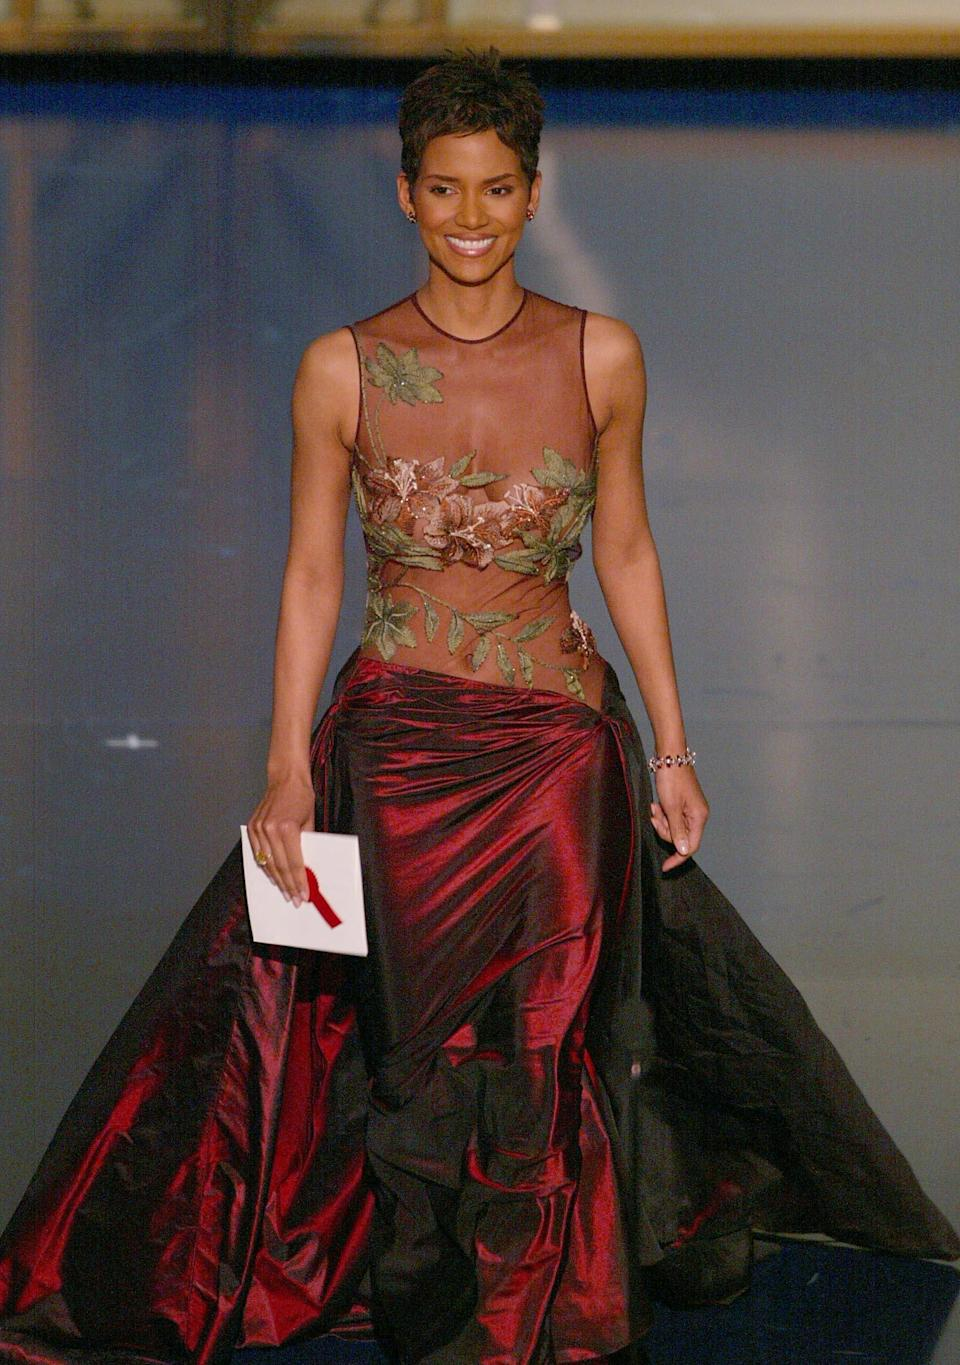 Halle Berry in 2002 wearing an Elie Saab gownAFP/Getty